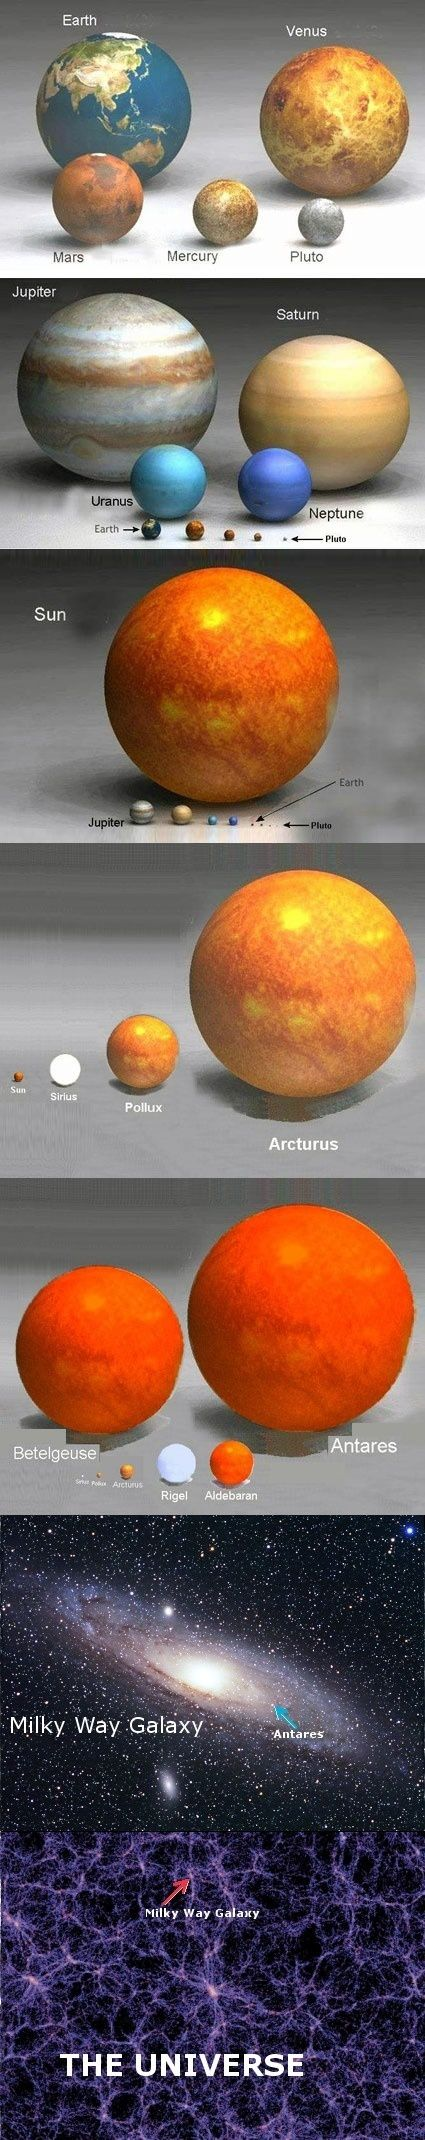 relative sizes of astronomical objects (from quora about iconic scientific image…